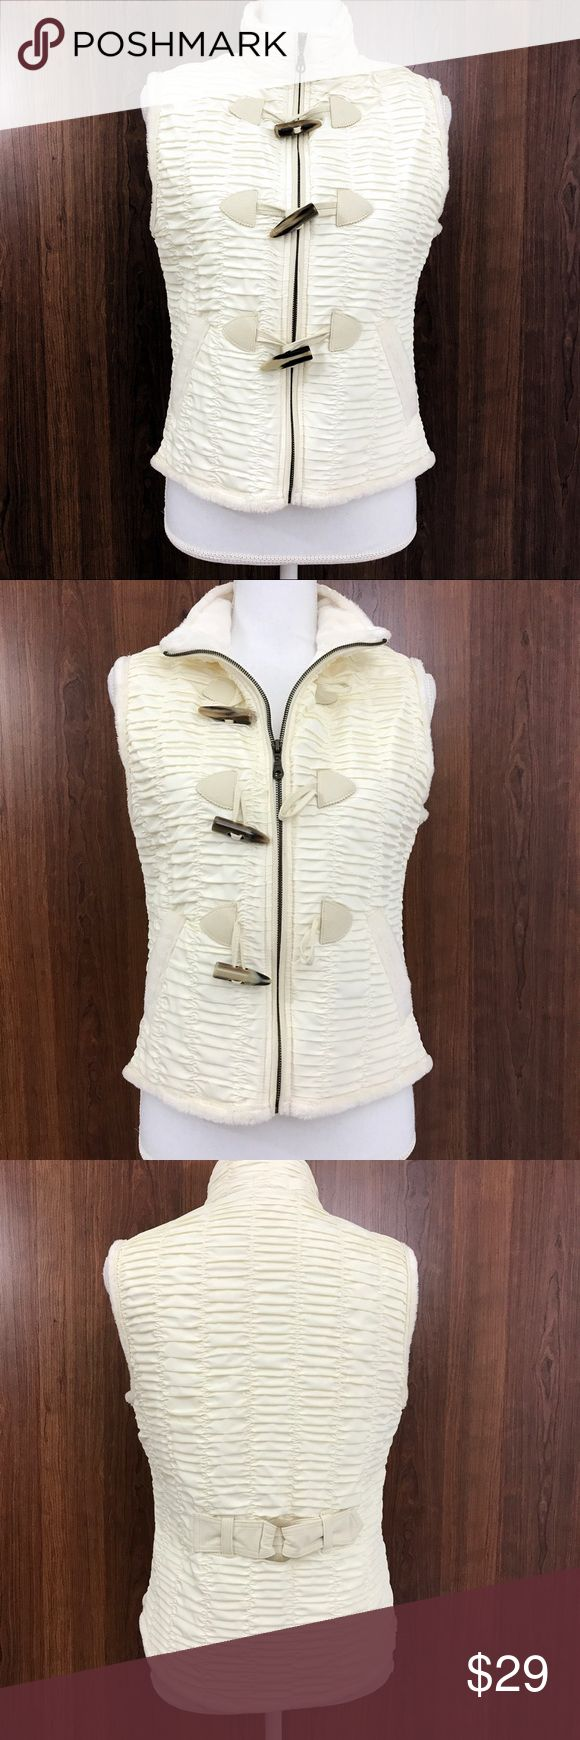 """Baxis & Baxis Cream Vest. Medium A beautiful and elegant women's vest designed by Baxis & Baxis. Fleece lined for warmth. Hi- Lo Length. Marble-look on """"ivory"""" smooth buttons. Zip up closure. A cute accent on the back waist for a nice figure flattering fit. Pre-owned. Great condition. Dry clean. Medium. Baxis & Baxis Jackets & Coats Vests"""